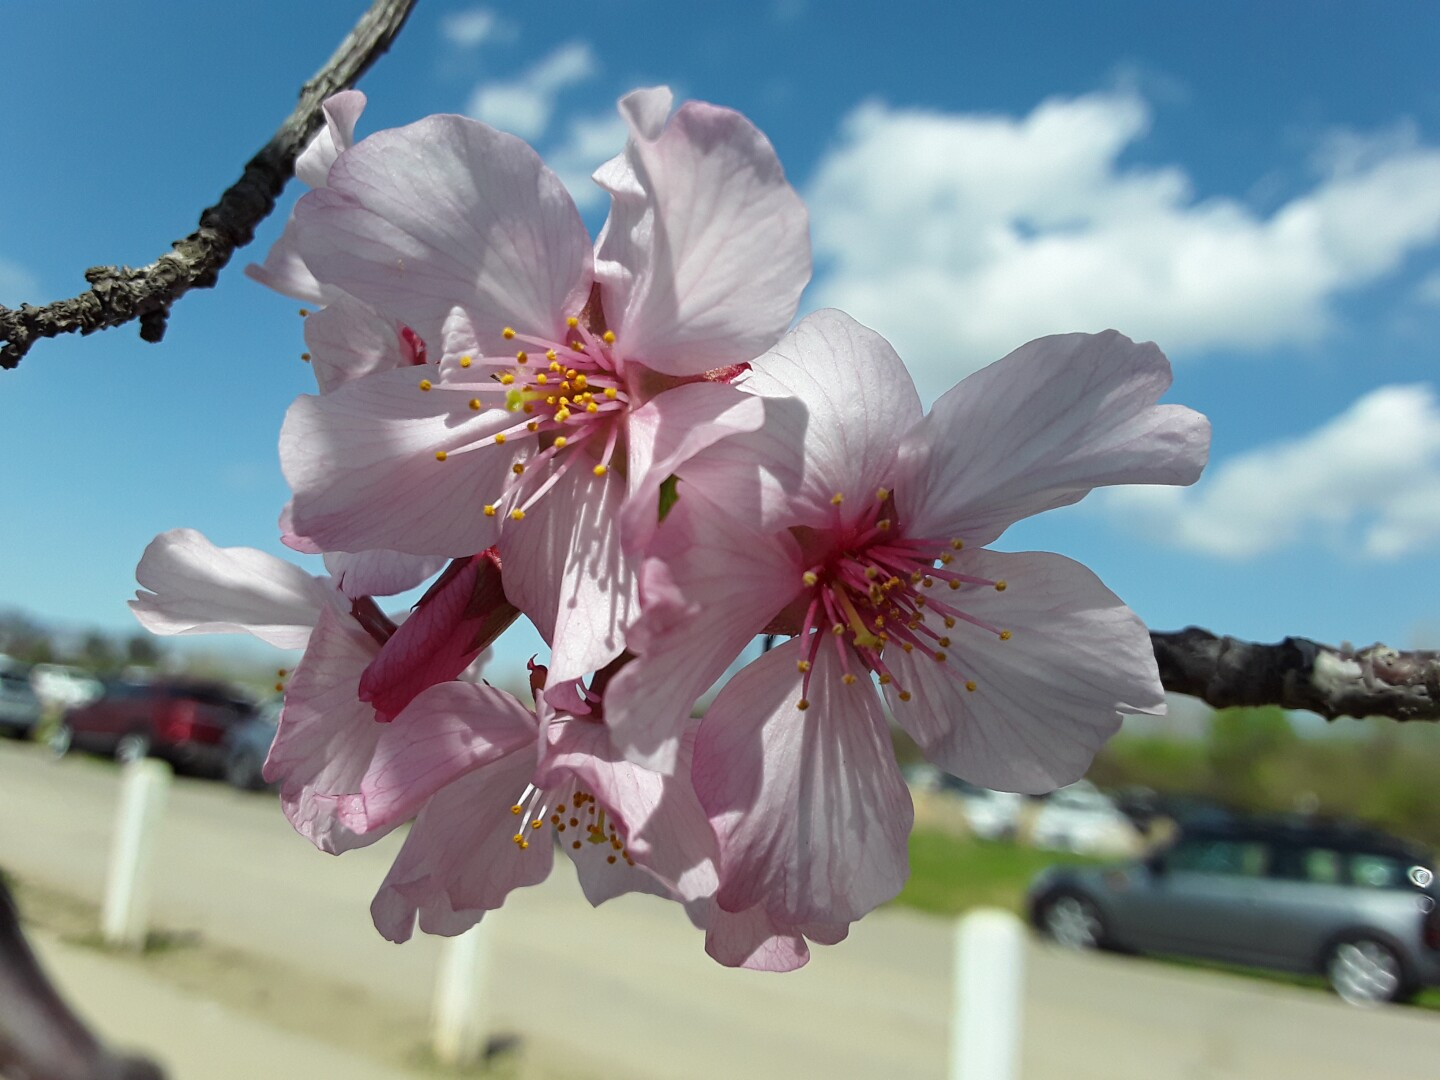 A close-up view of the cherry blossoms in Lake Balboa in San Fernando Valley.